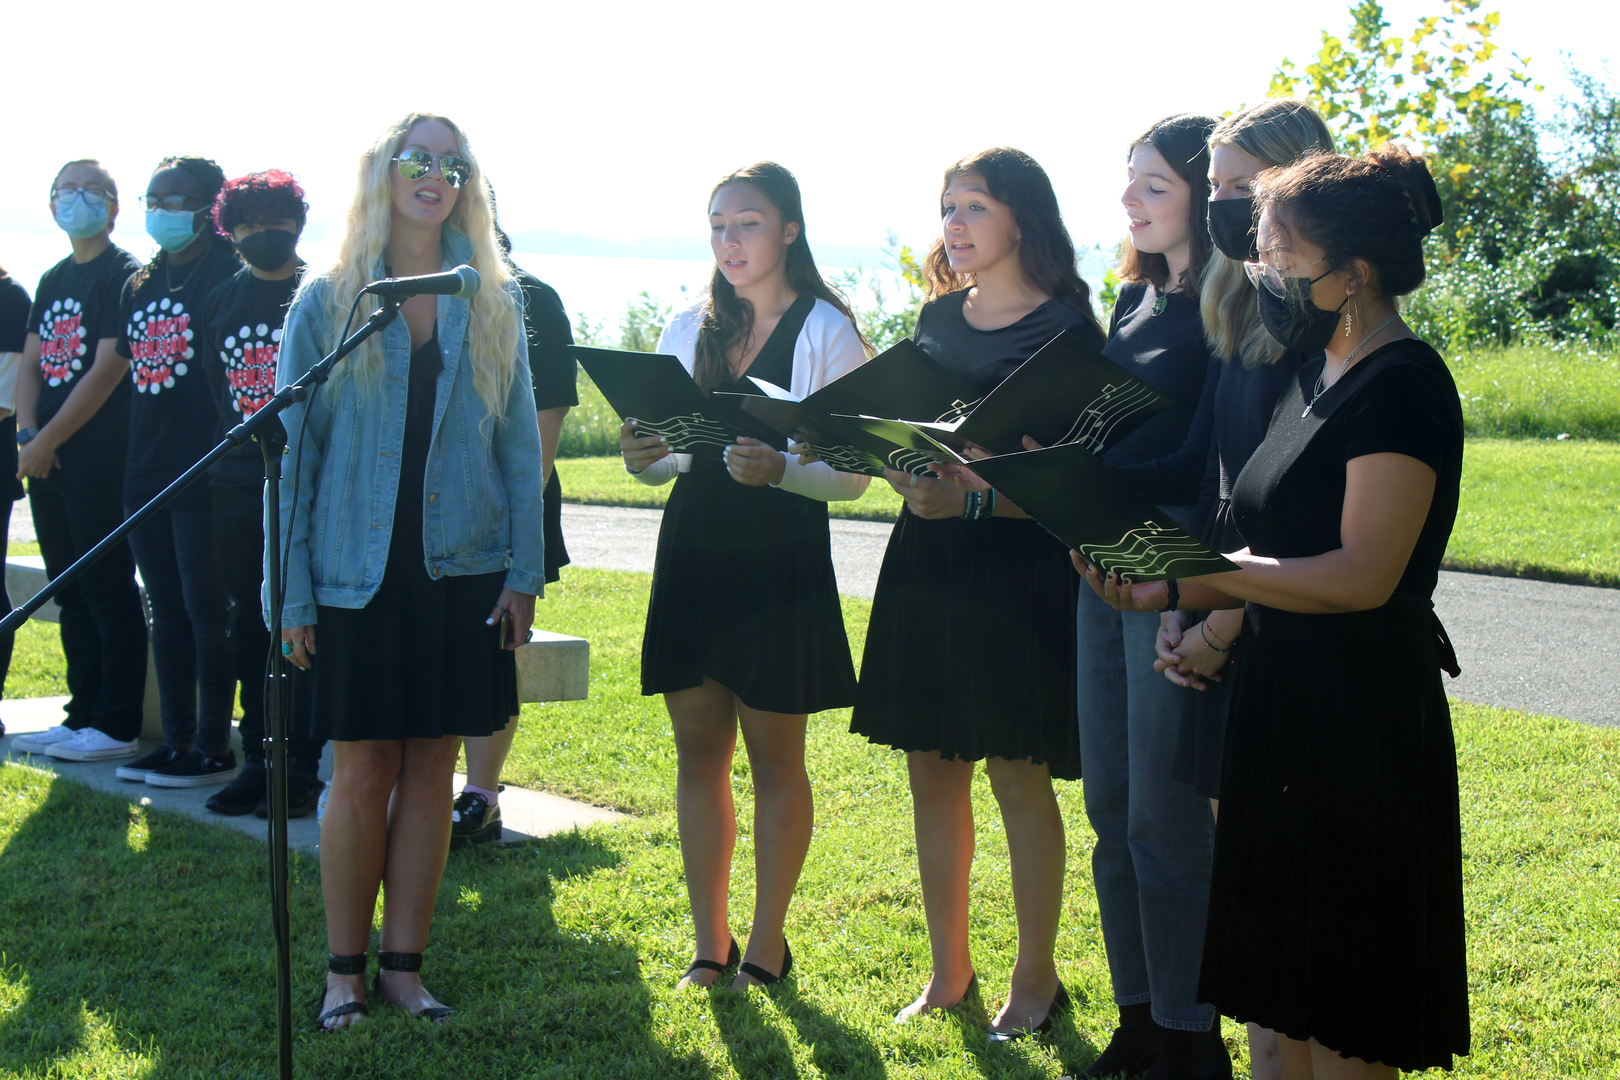 Students sing at 9/11 memorial service ceremony